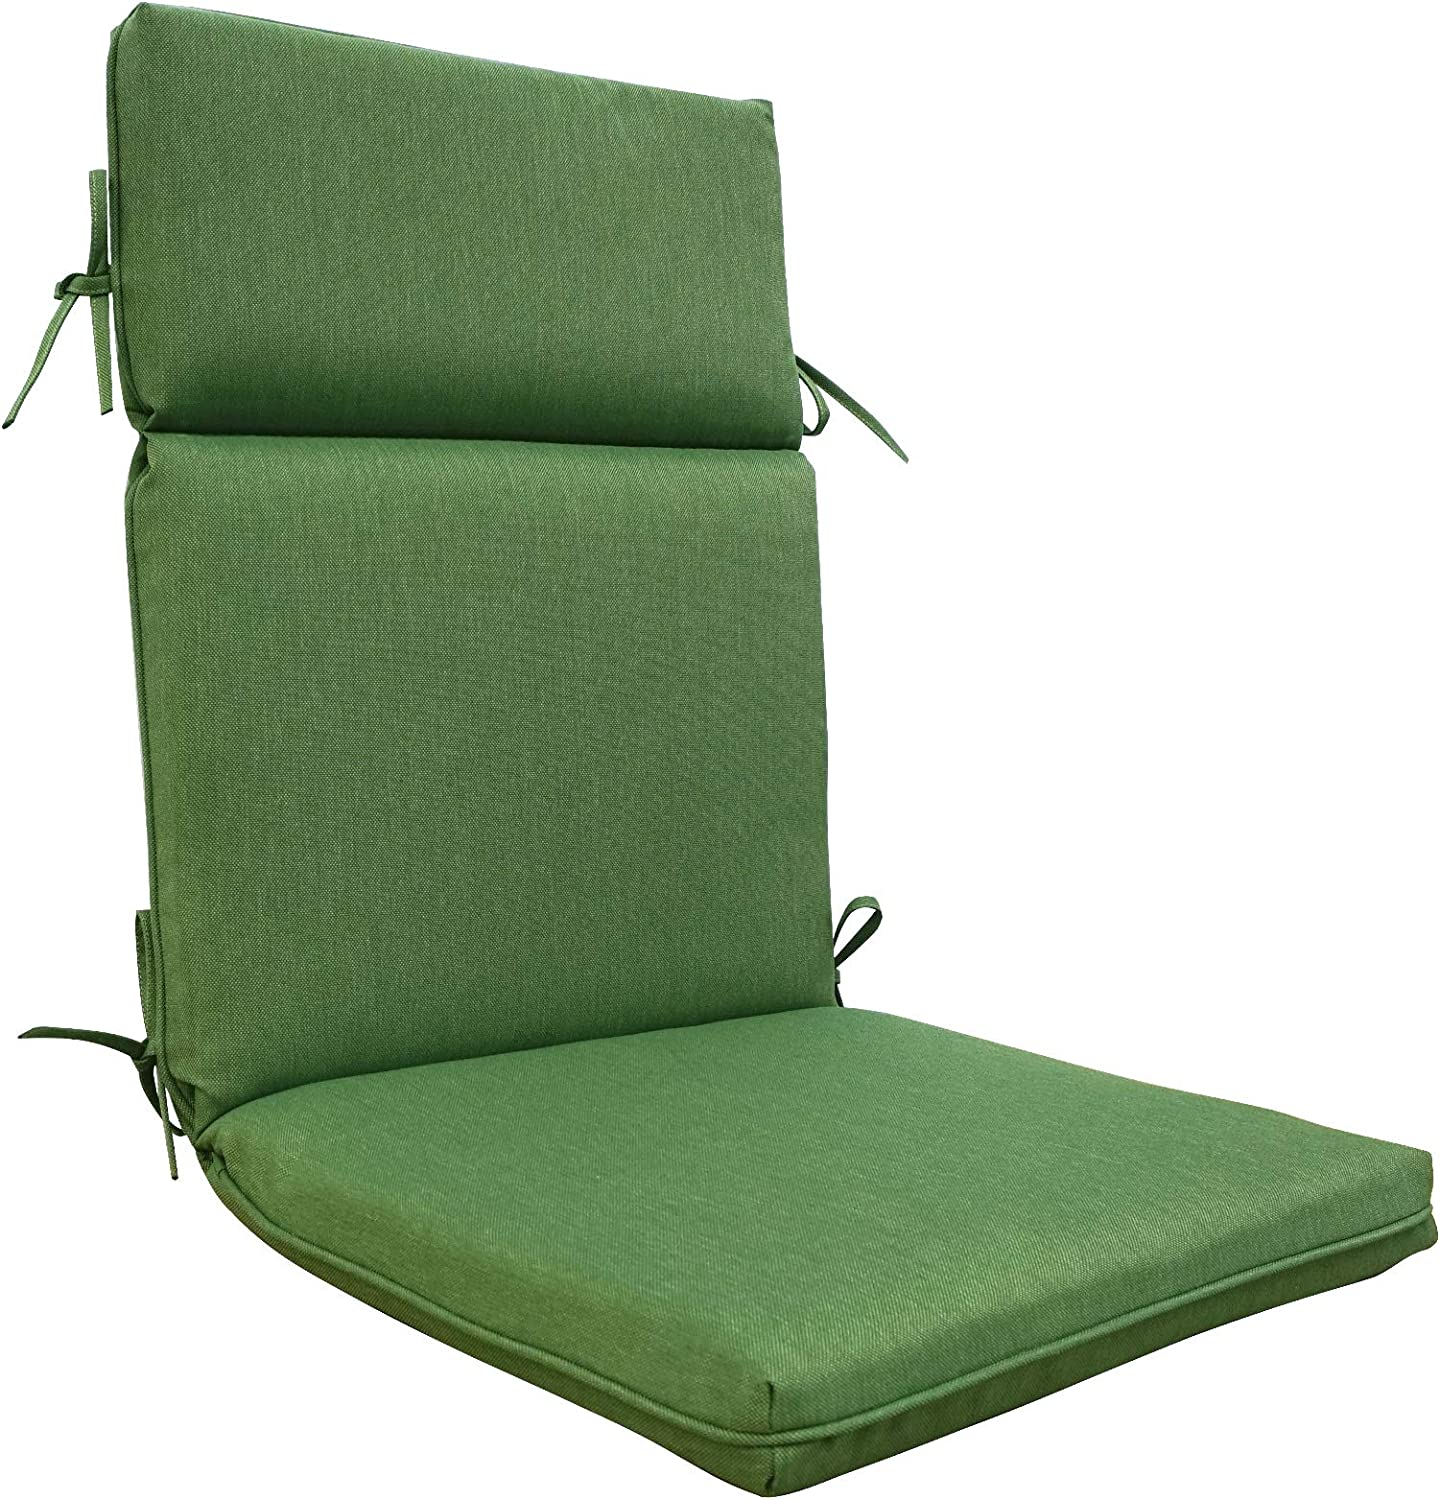 BOSSIMA Outdoor Indoor High Back Chair Cushions Comfort Replacement Patio Seating Cushions Deep Green